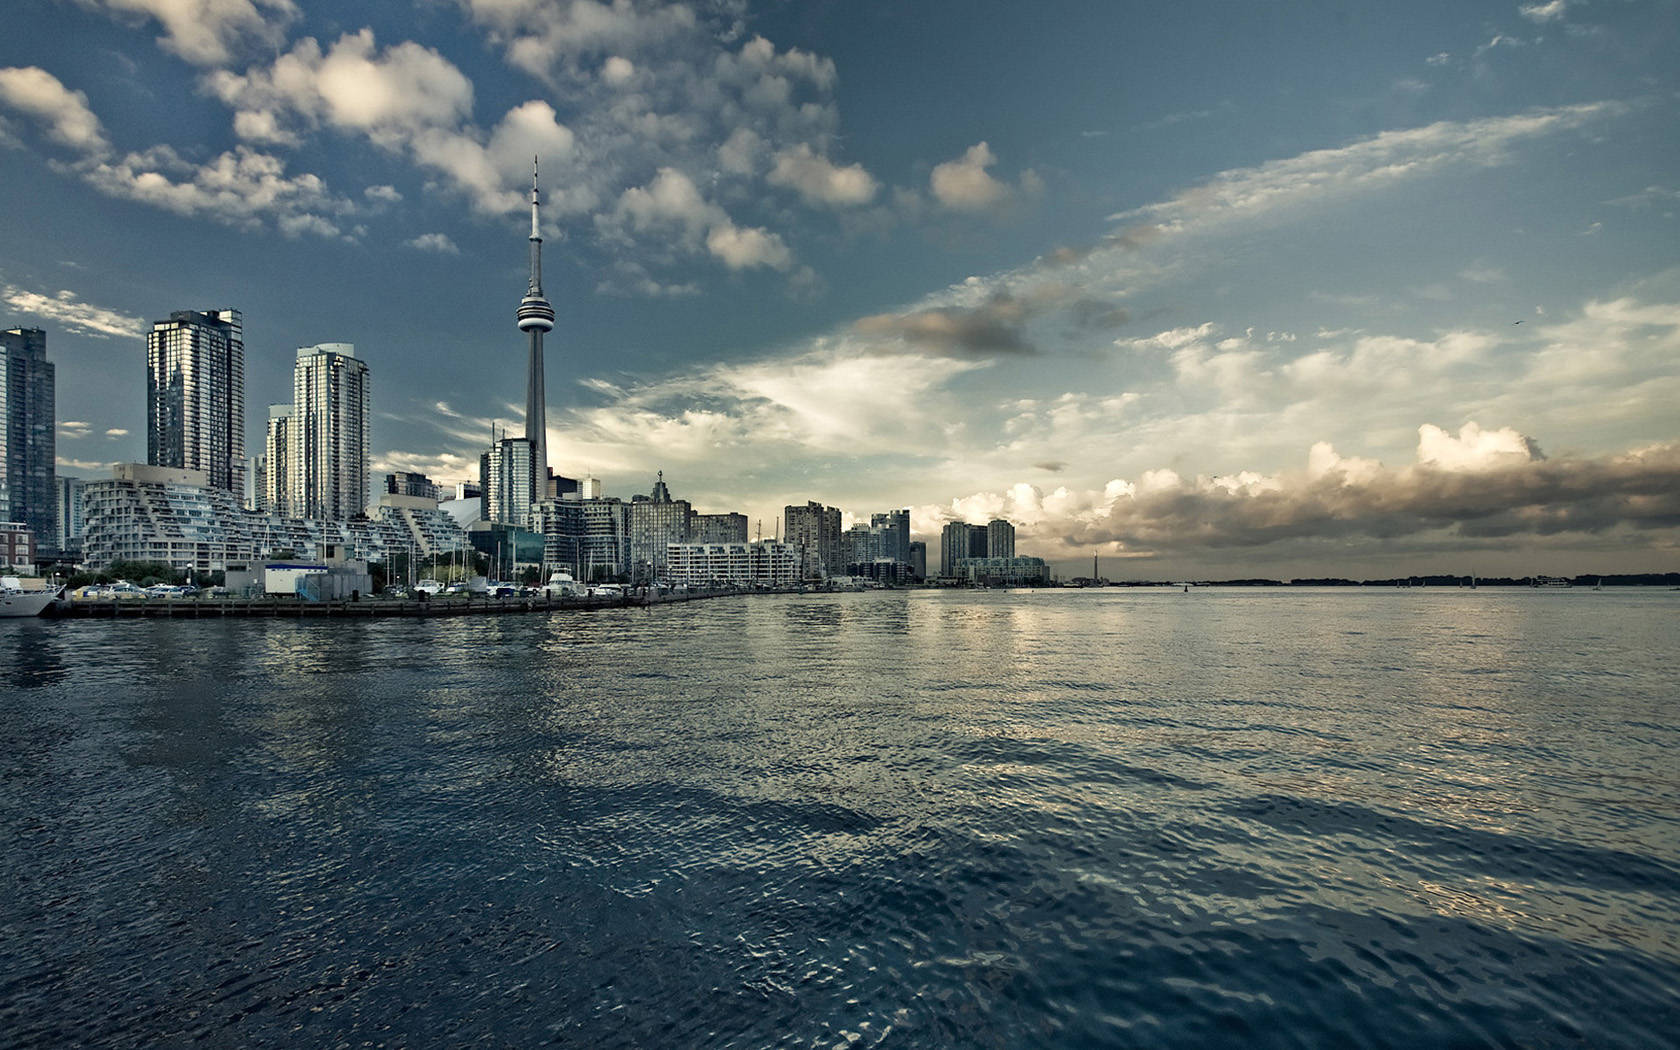 Toronto city wallpaper Canada cityscape.jpg